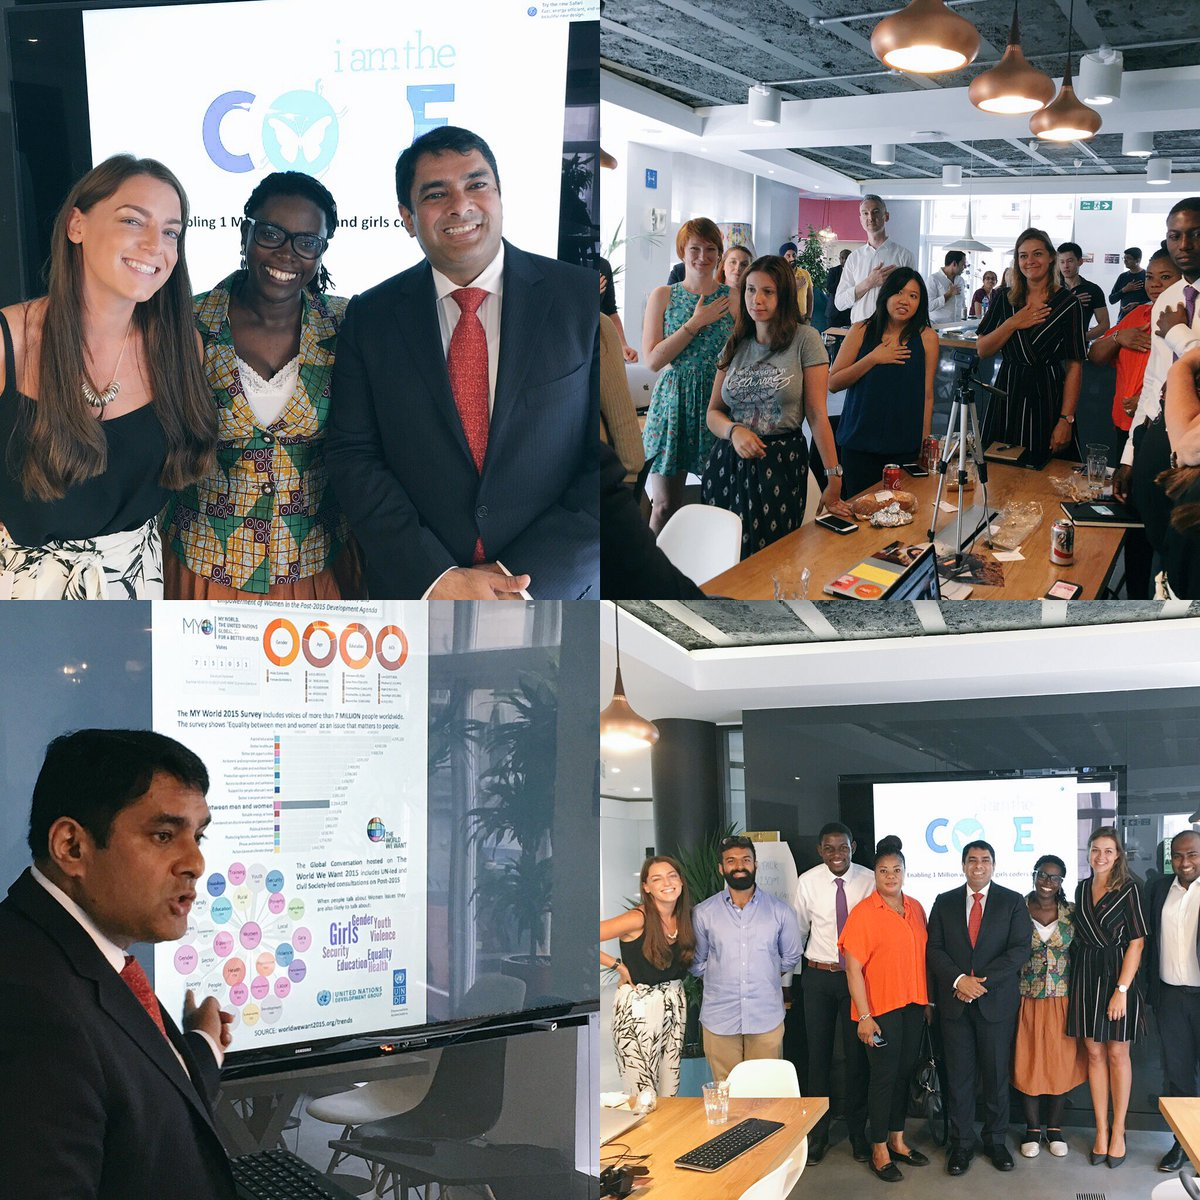 Grateful to @thoughtworks @laurapatersonuk @JadeyDaubney for hosting @ravikarkara @mjamme from @UN_Women! We can co-create for change! #STEM <br>http://pic.twitter.com/InIIYxwbcM